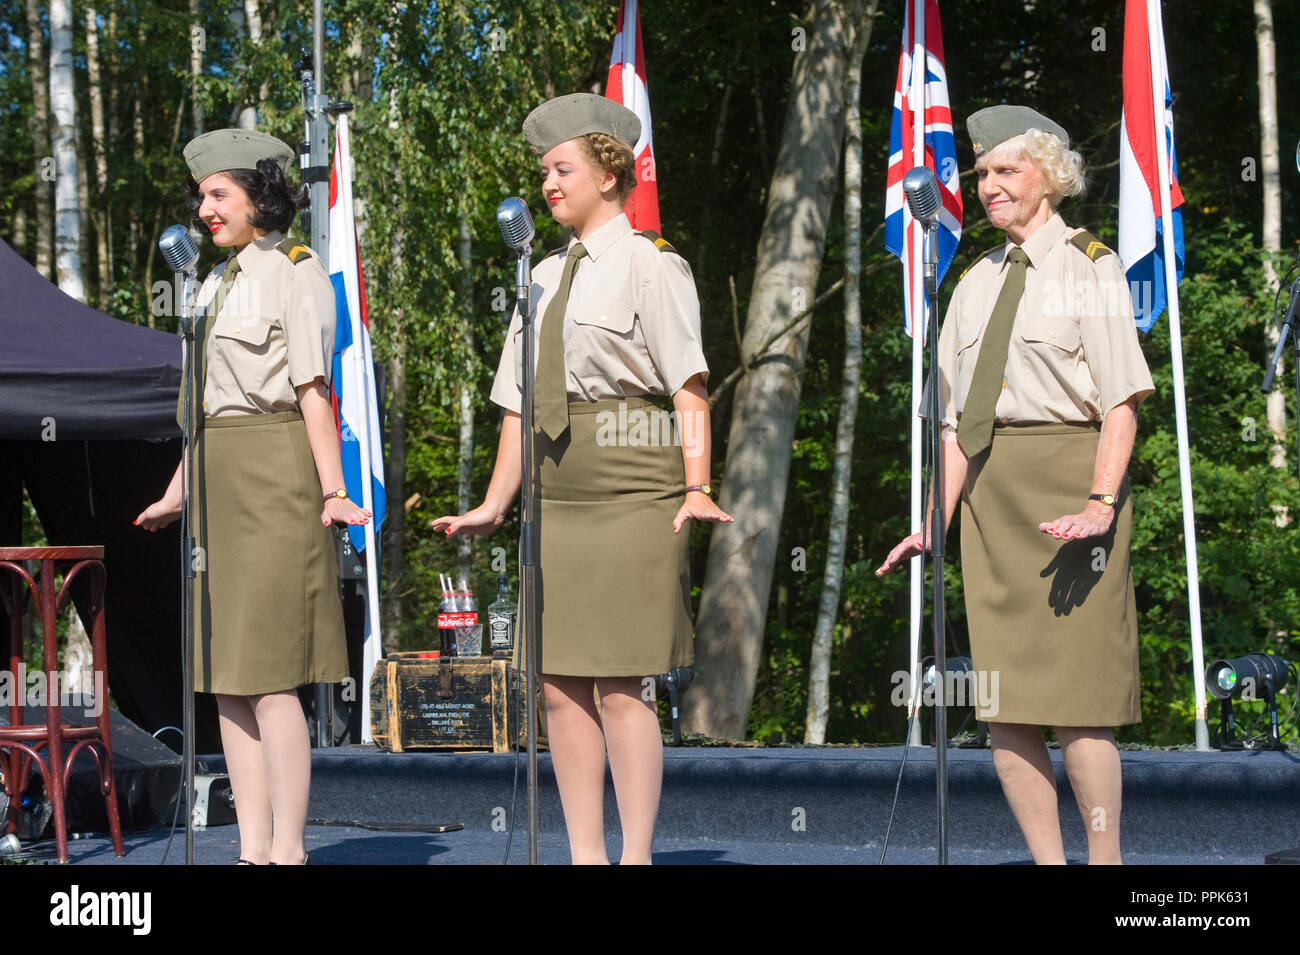 ENSCHEDE, THE NETHERLANDS - 01 SEPT, 2018: 'Sgt. Wilson's army show 'doing their stage act with historic forties songs during a military army show. - Stock Image